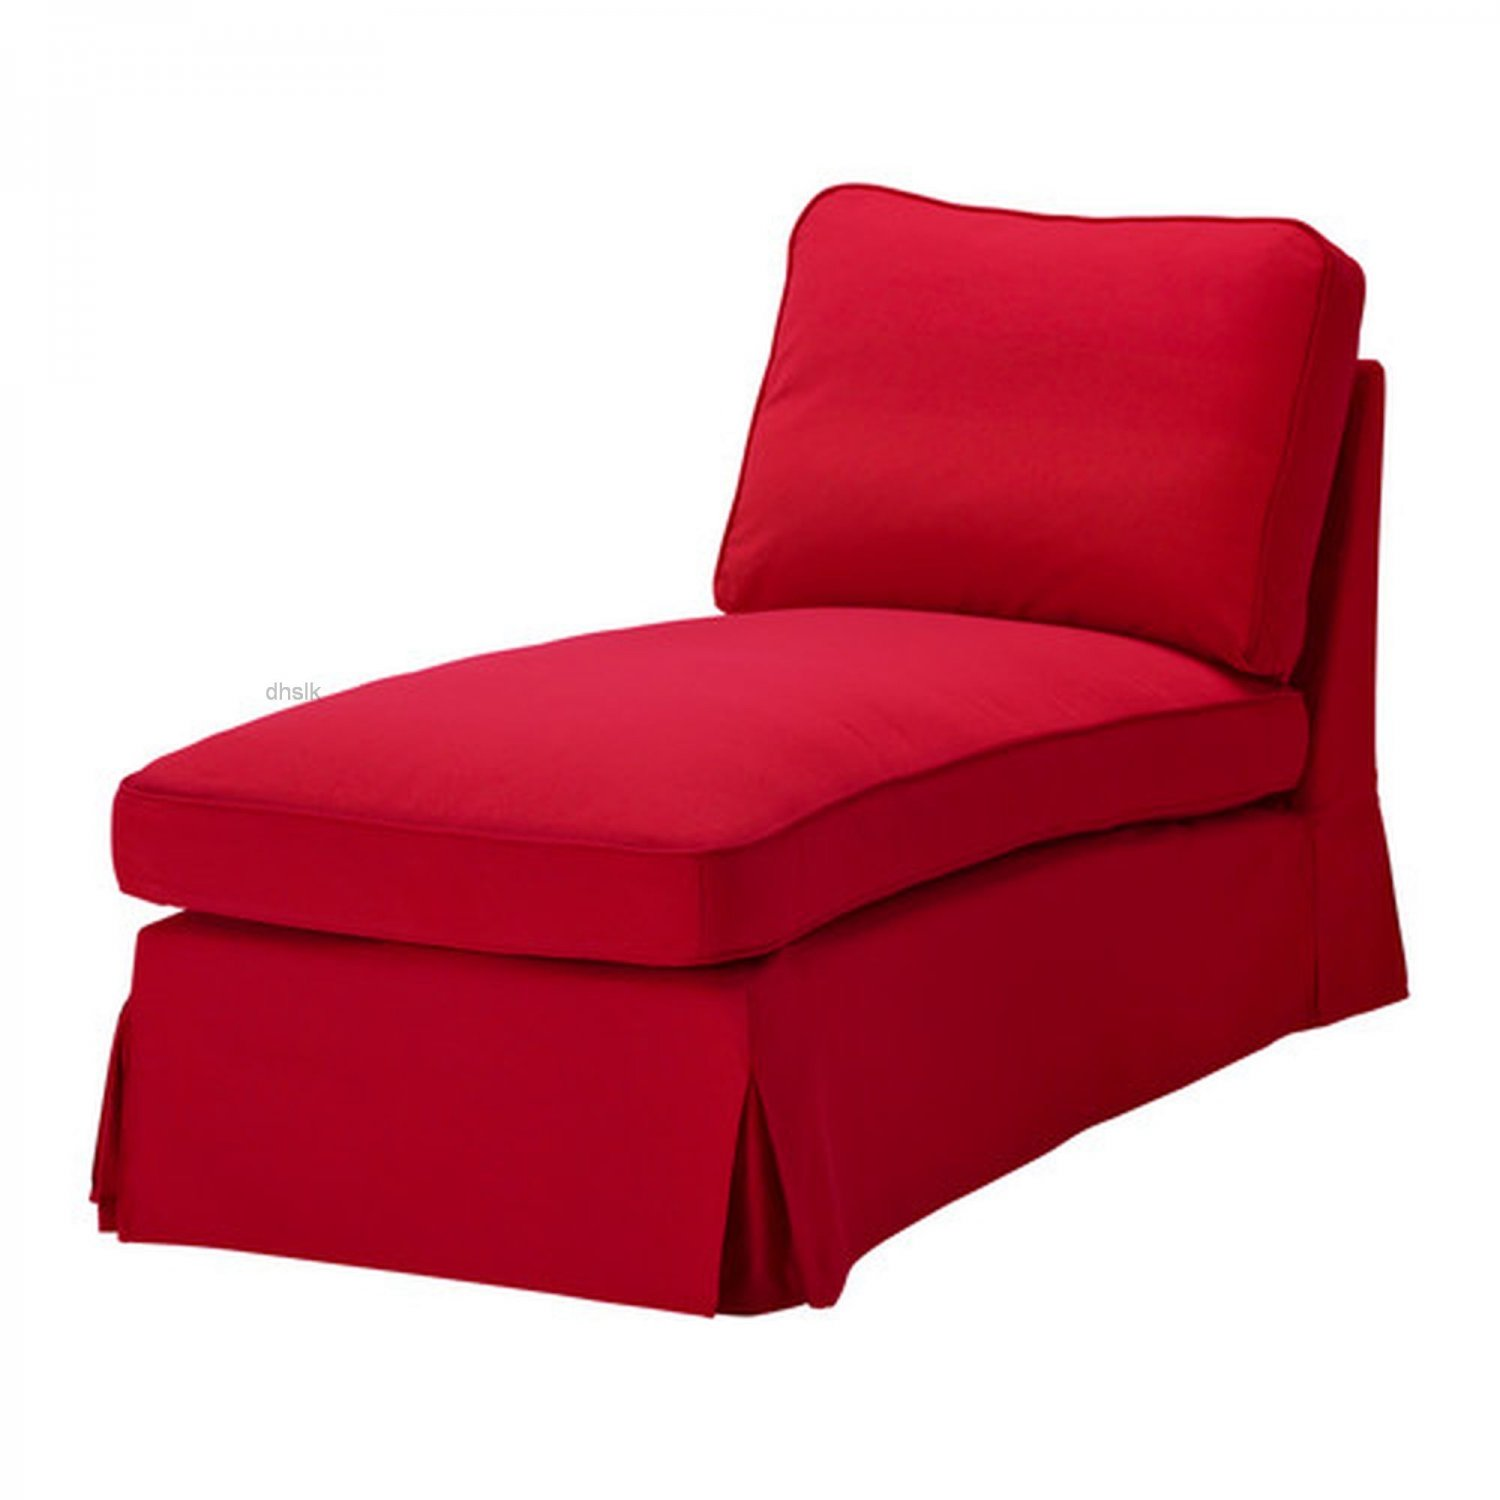 ikea ektorp free standing chaise cover slipcover idemo red. Black Bedroom Furniture Sets. Home Design Ideas